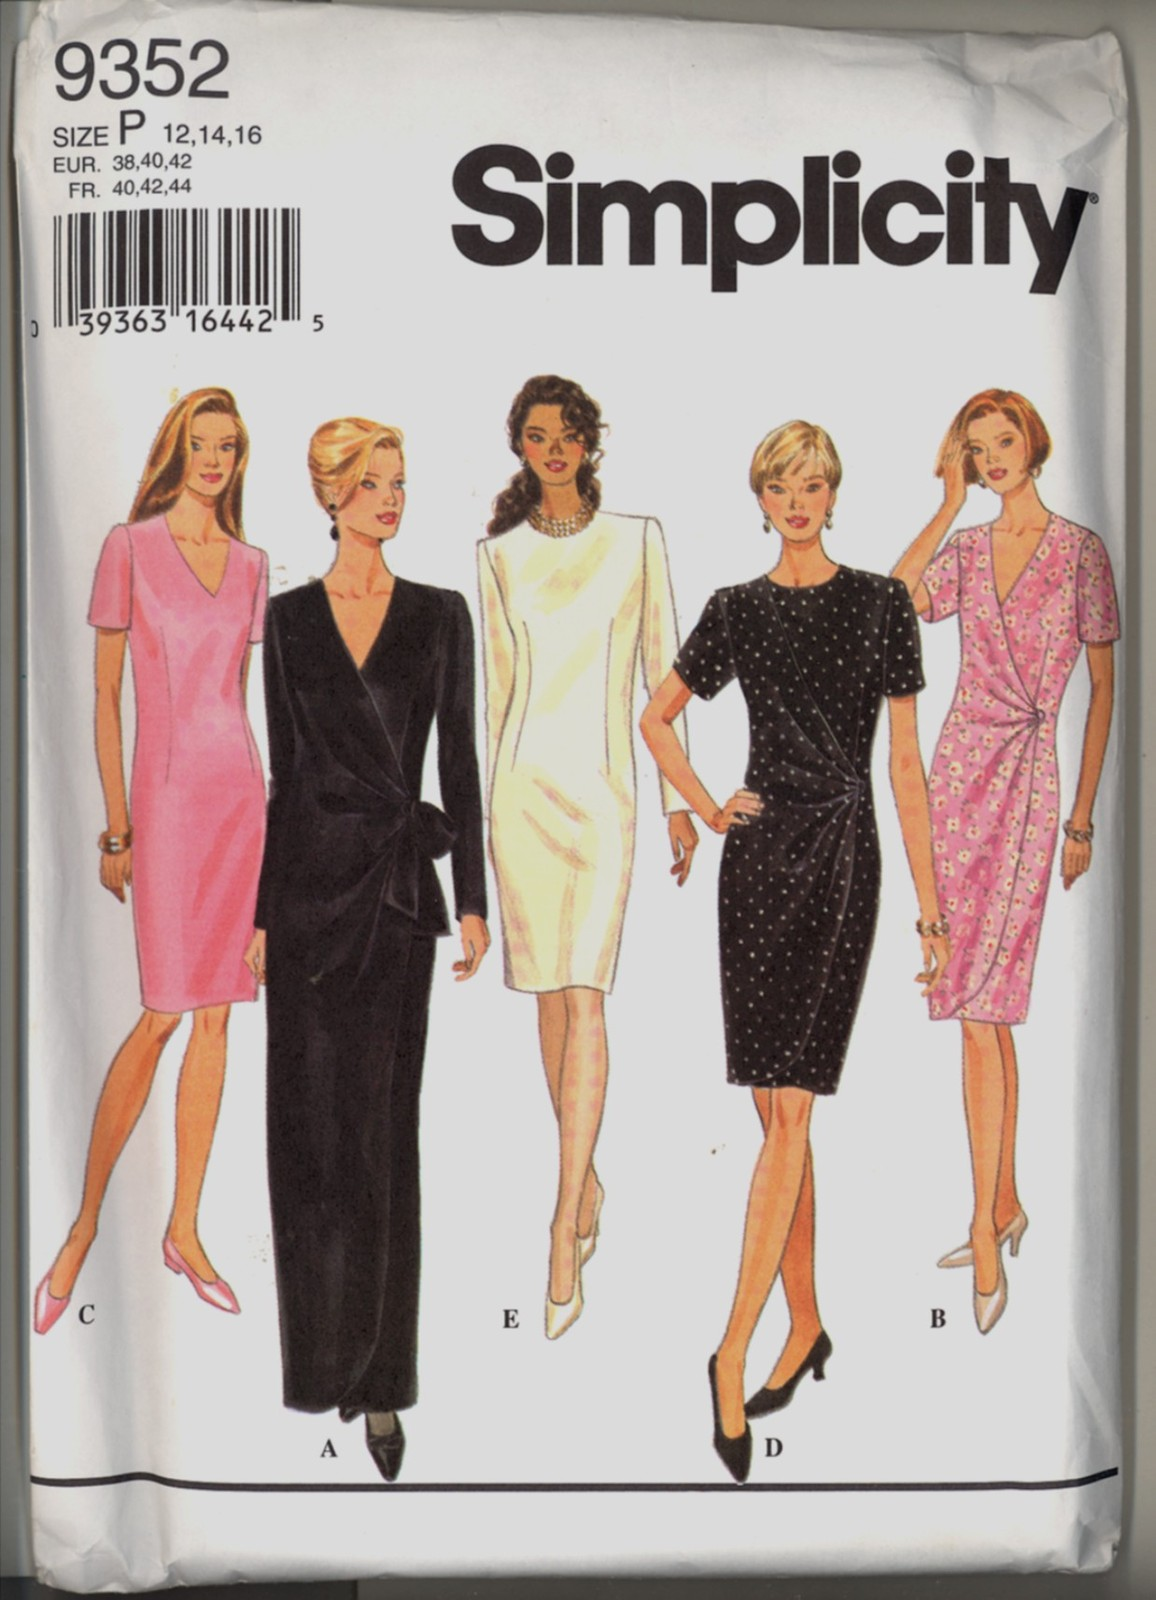 New Size 12 14 16 Bust 34 36 38 Front Drape Dress Simplicity 9352 Sewing Pattern